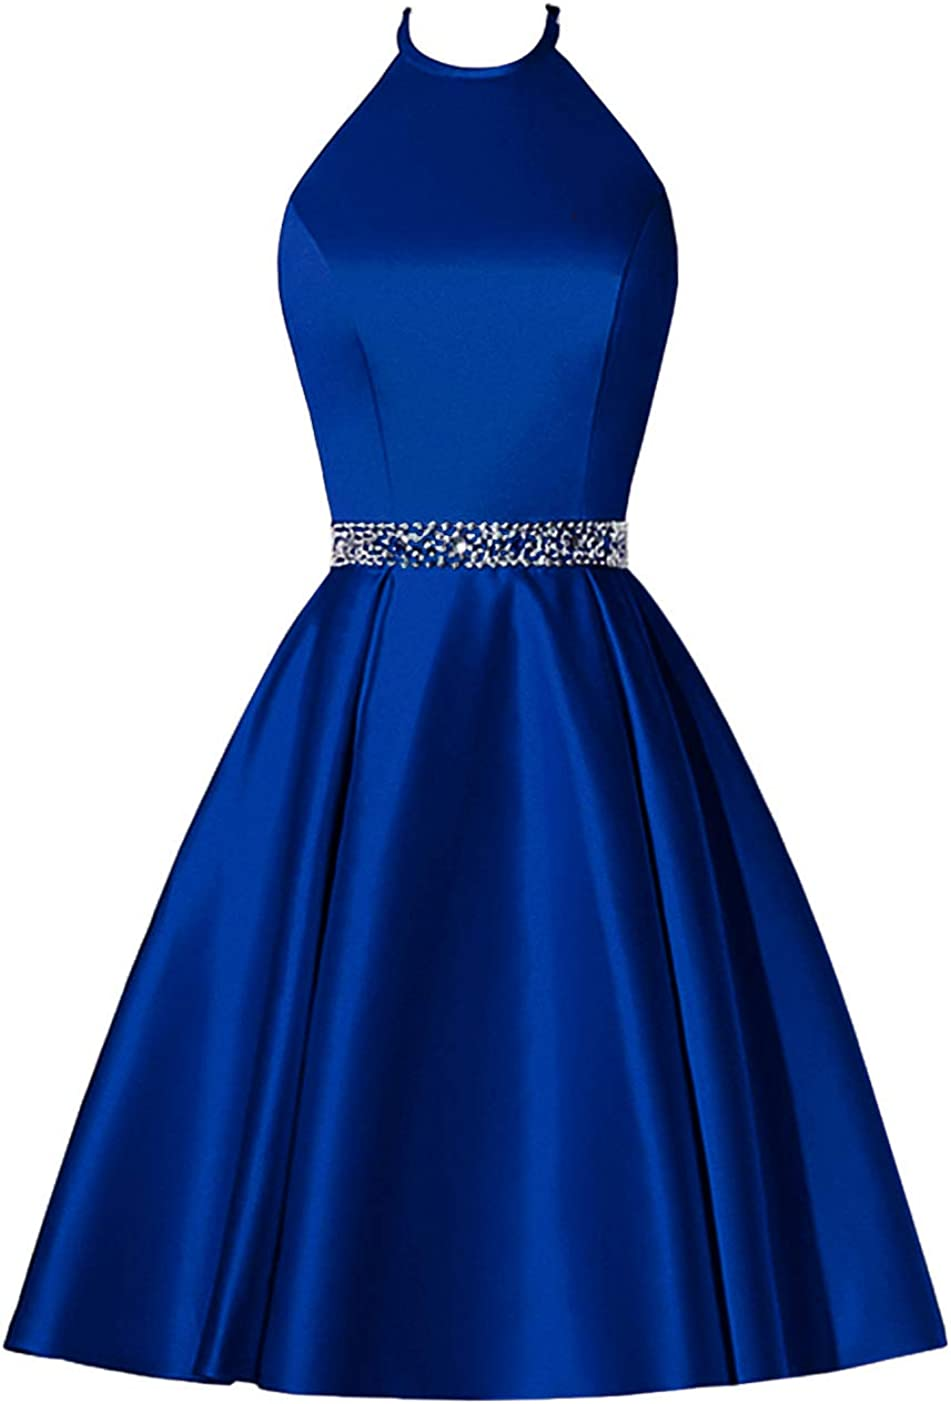 Molisa Short Prom Dress Halter Homecoming Dresses with Pockets Satin Cocktail Party Dress Evening Gown